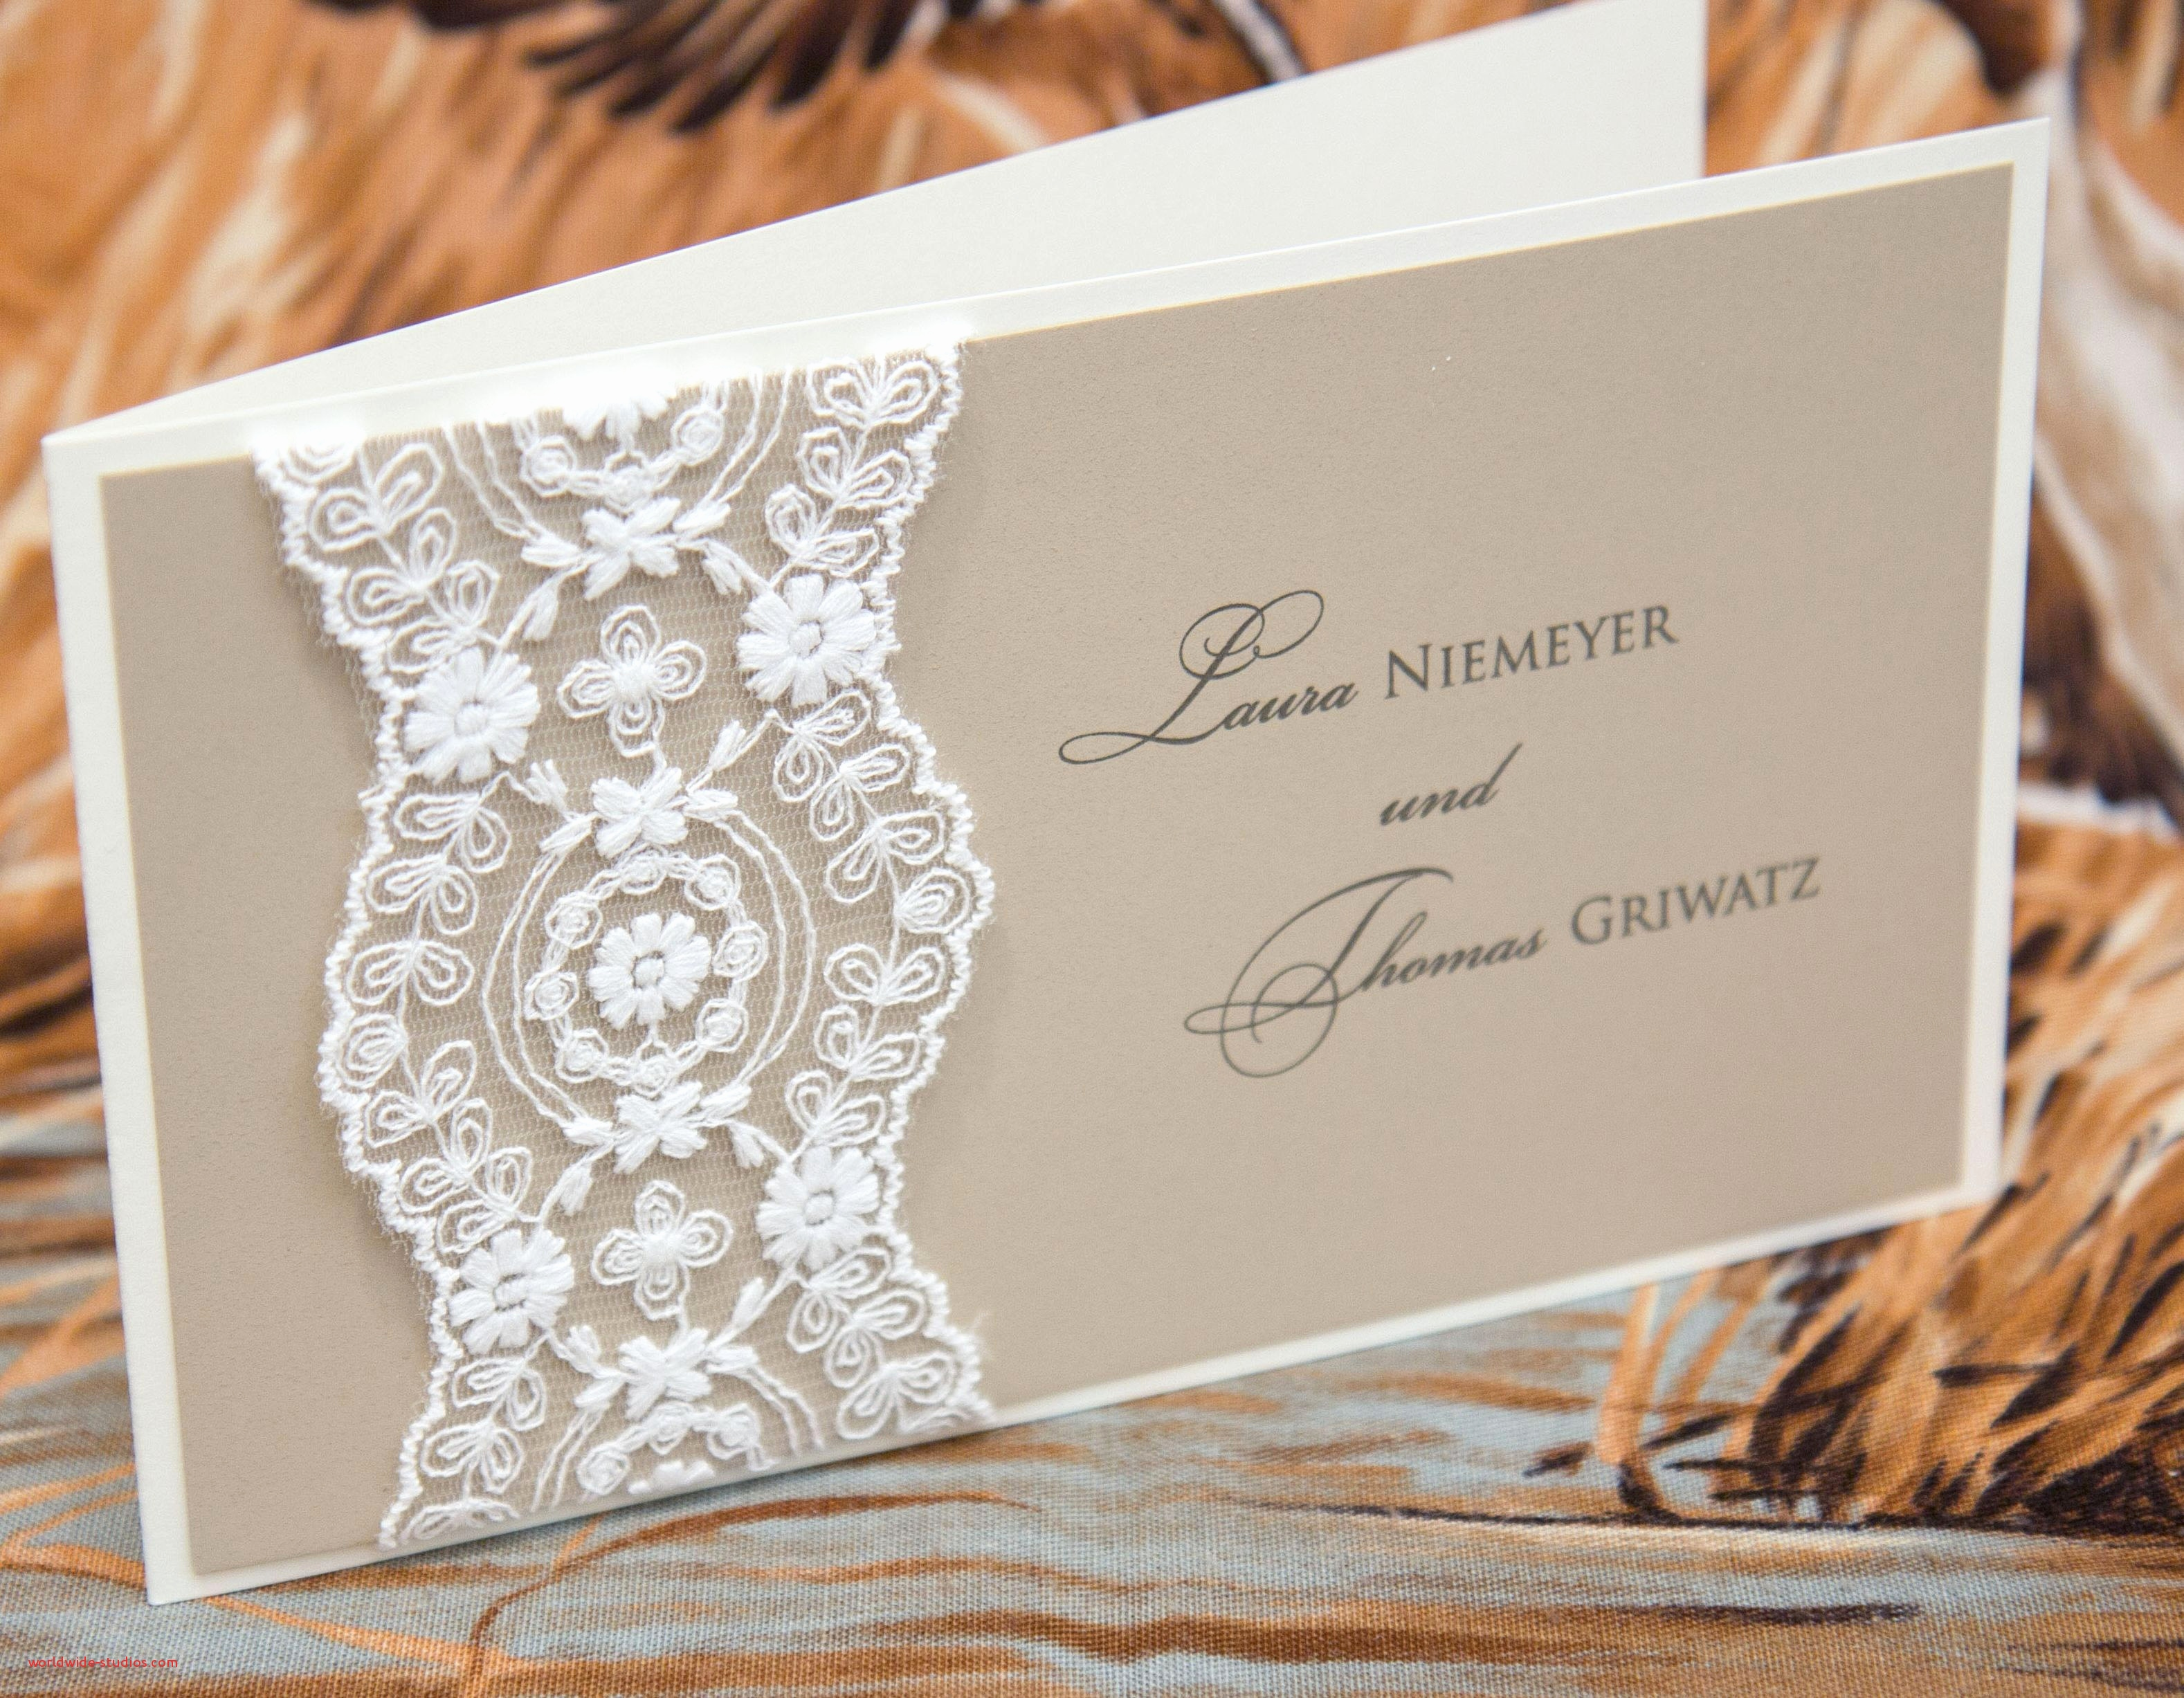 Diy Hochzeitskarten Inspirierend top Result Diy Wedding Invitations Doily Lovely Exklusive